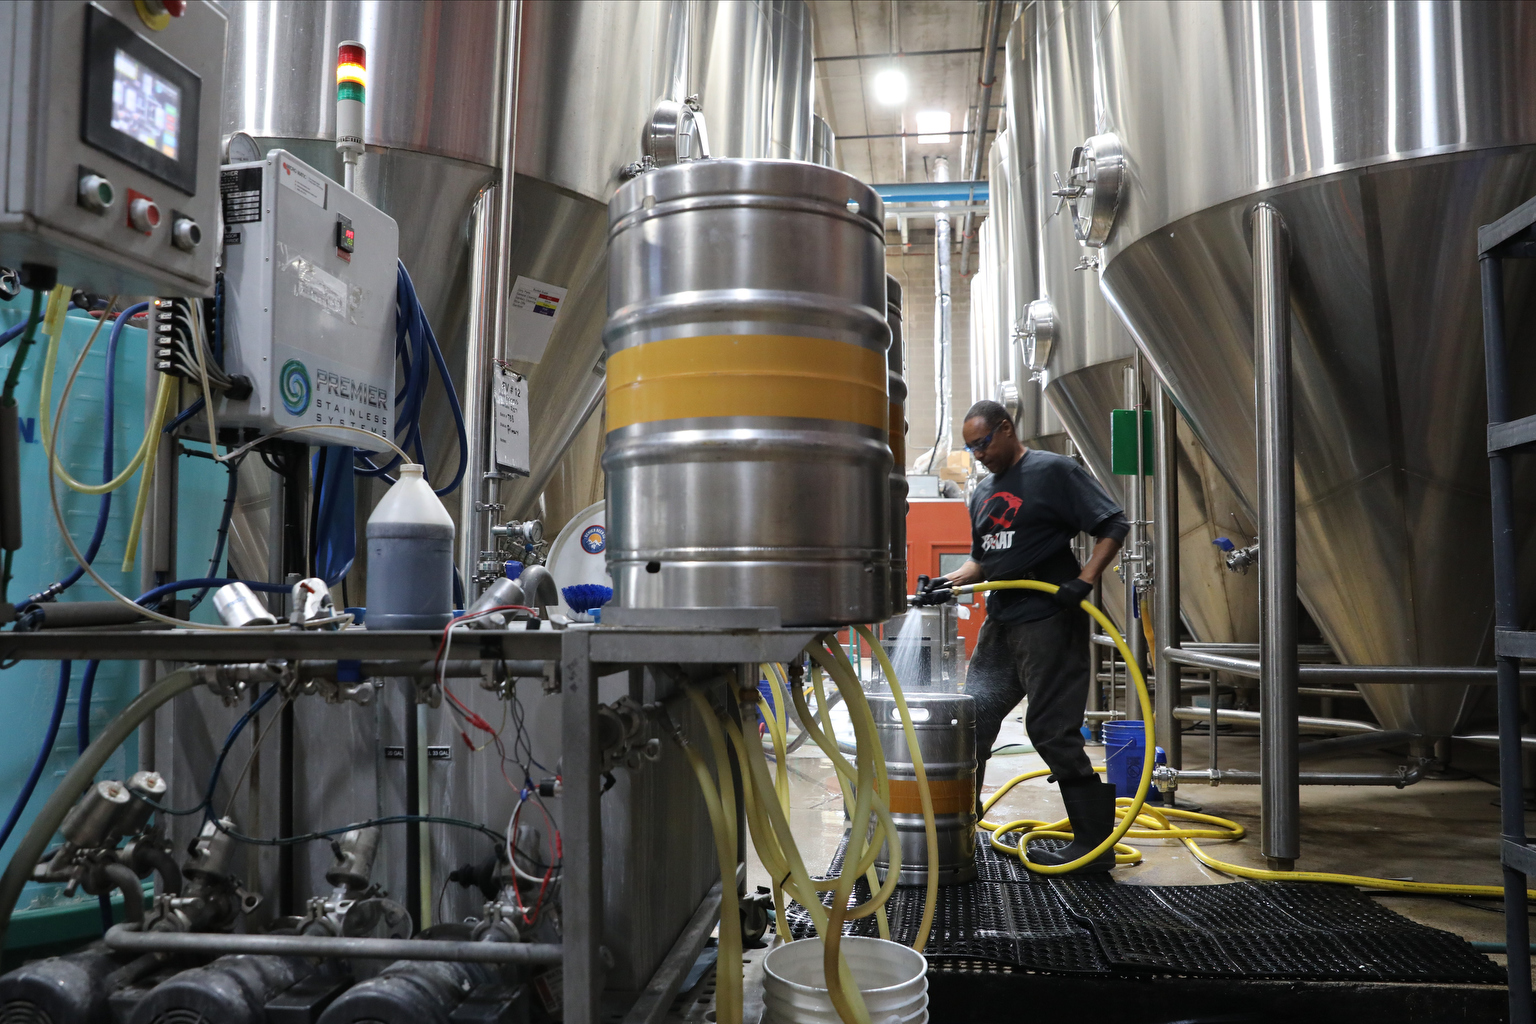 Denver Beer Co's Carbon Dioxide Boosts Plant Growth At The Clinic's Marijuana Growing Operation